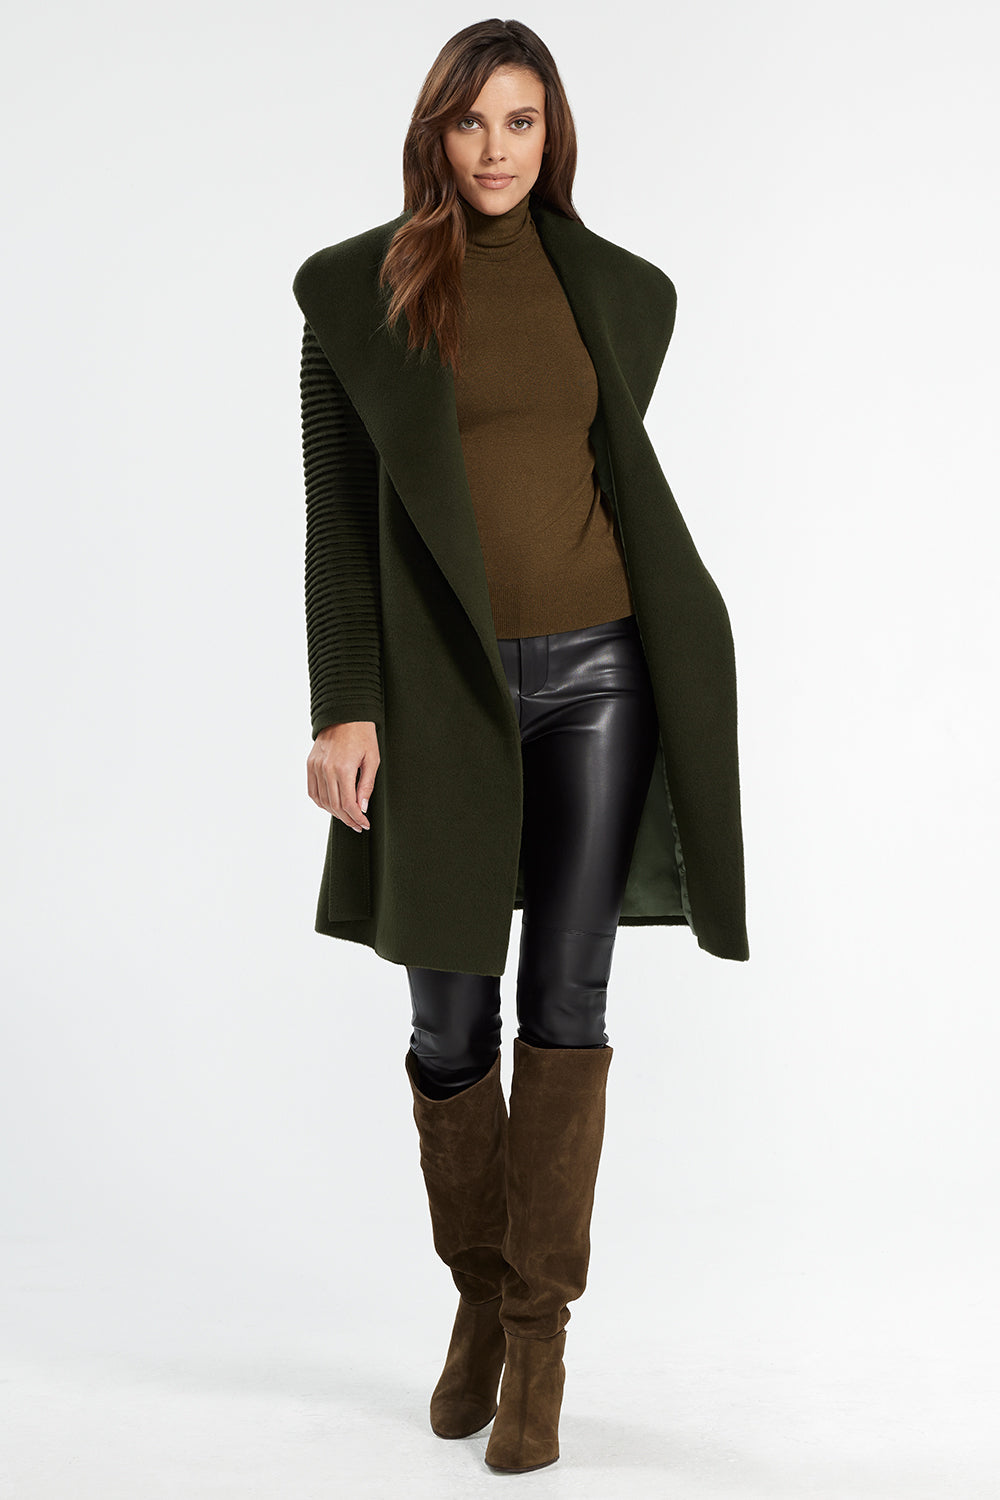 Sentaler Mid Length Shawl Collar Wrap Coat with Ribbed Sleeves featured in Baby Alpaca and available in Olive. Seen open.